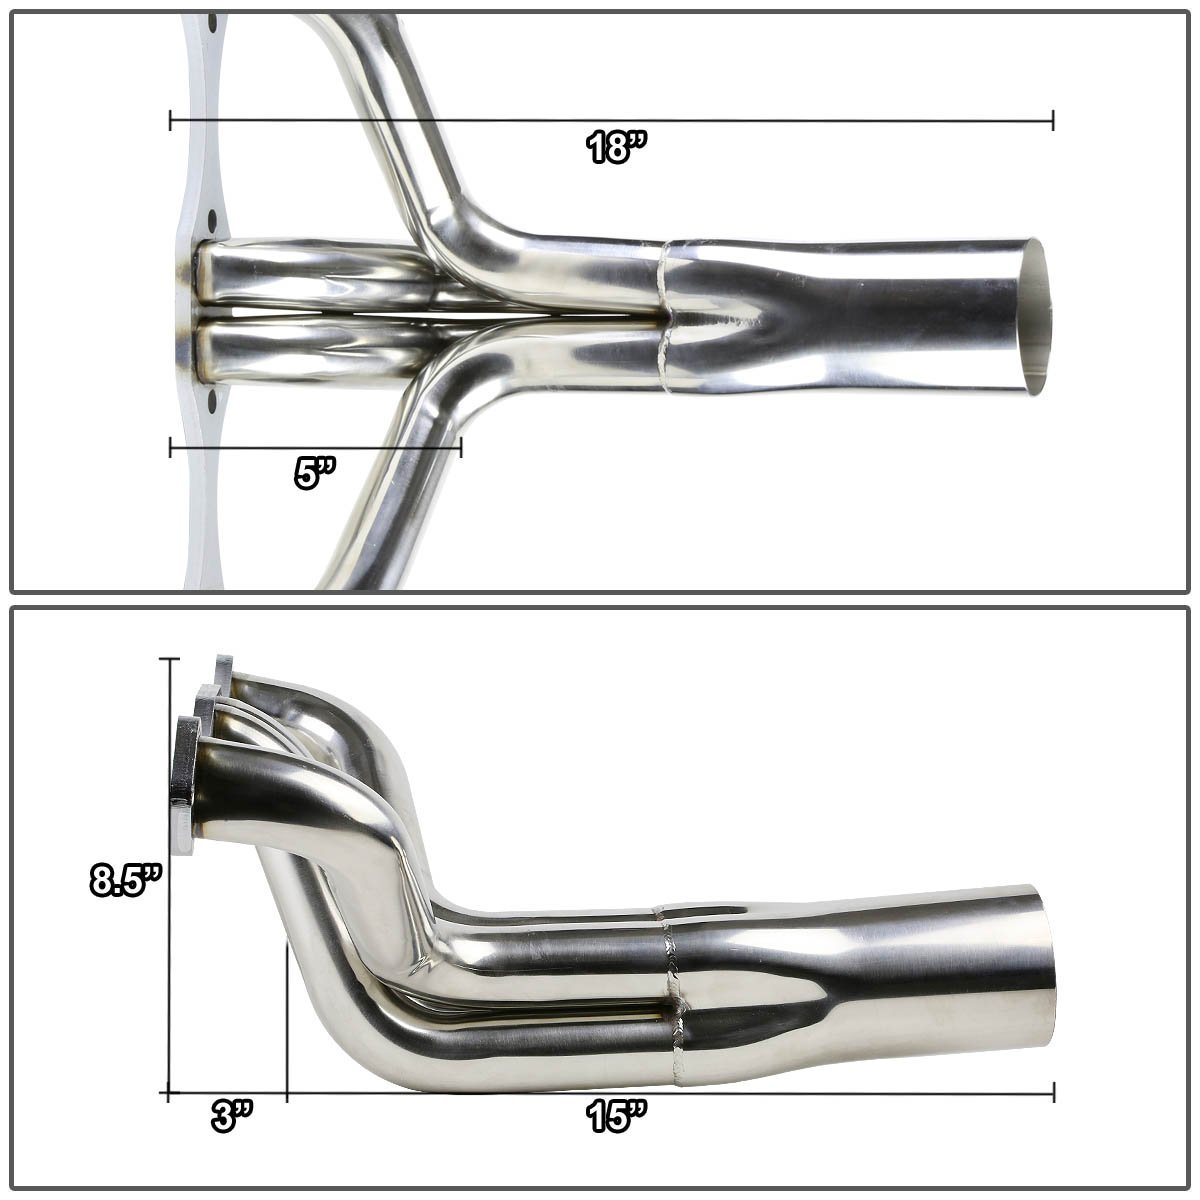 Chevy Small Block SBC V8 IMCA Stainless Steel Exhaust Header